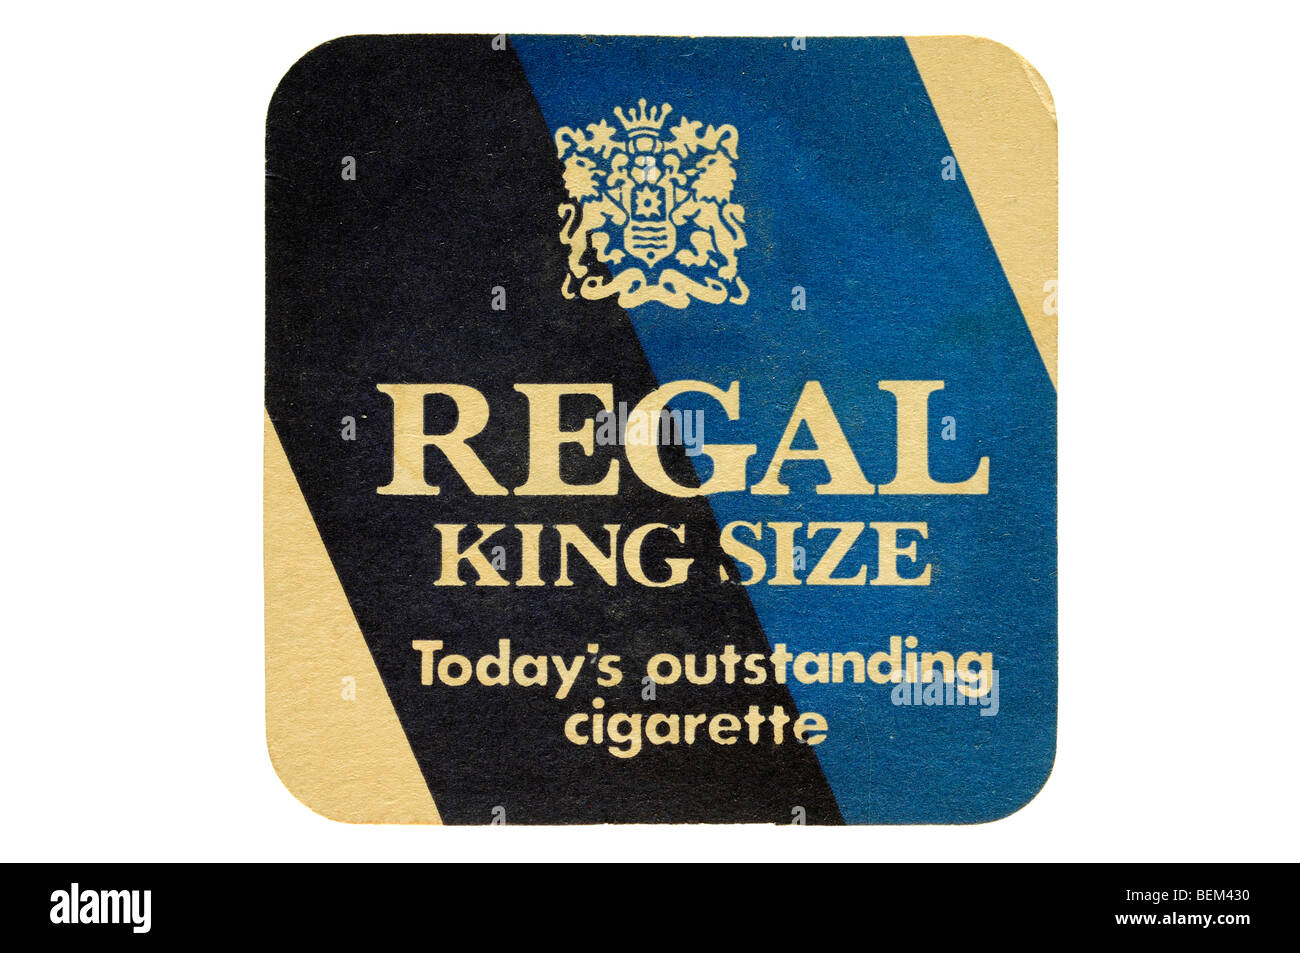 regal kingsize todays outstanding cigarette - Stock Image